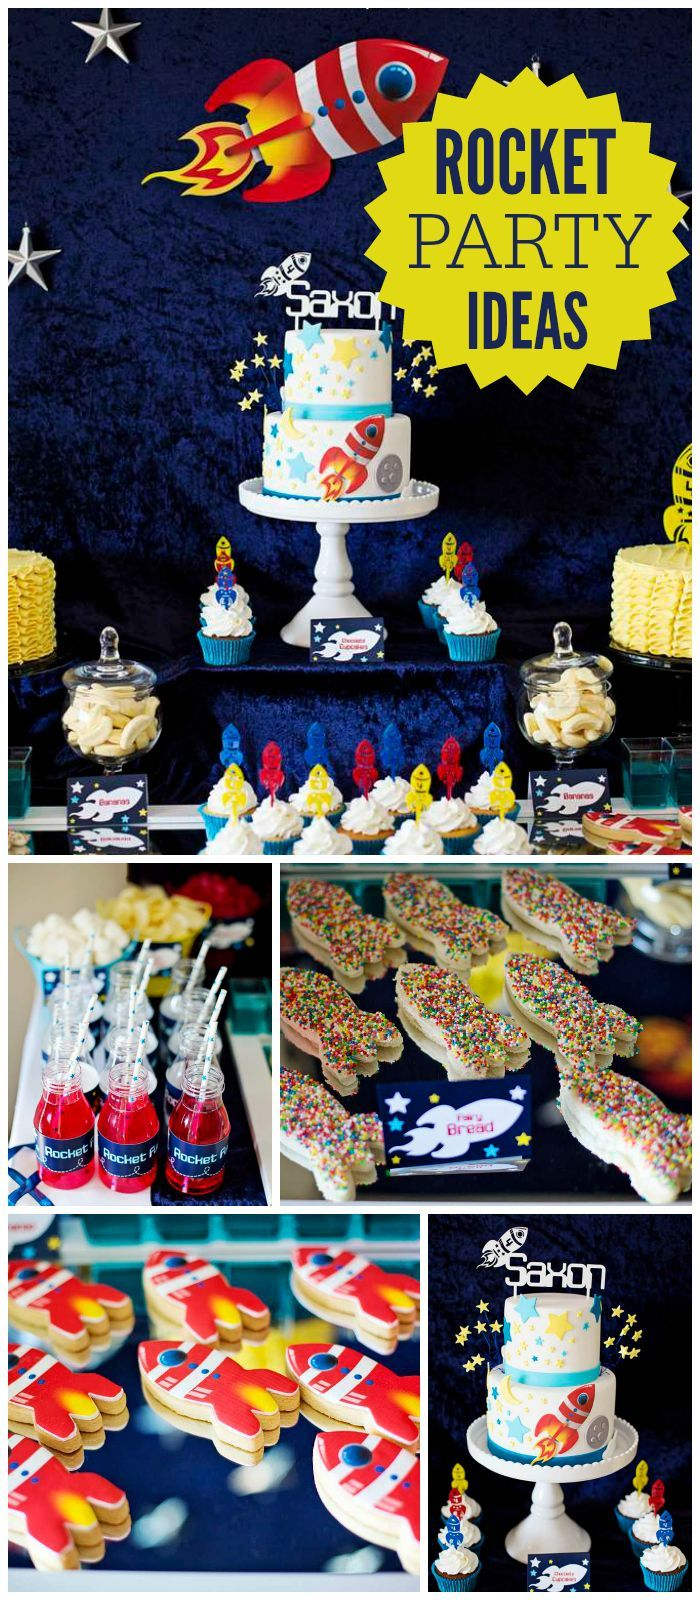 Check out this awesome outer space rocket birthday party with fairy bread and an amazing cake! See more party planning ideas at CatchMyParty.com!